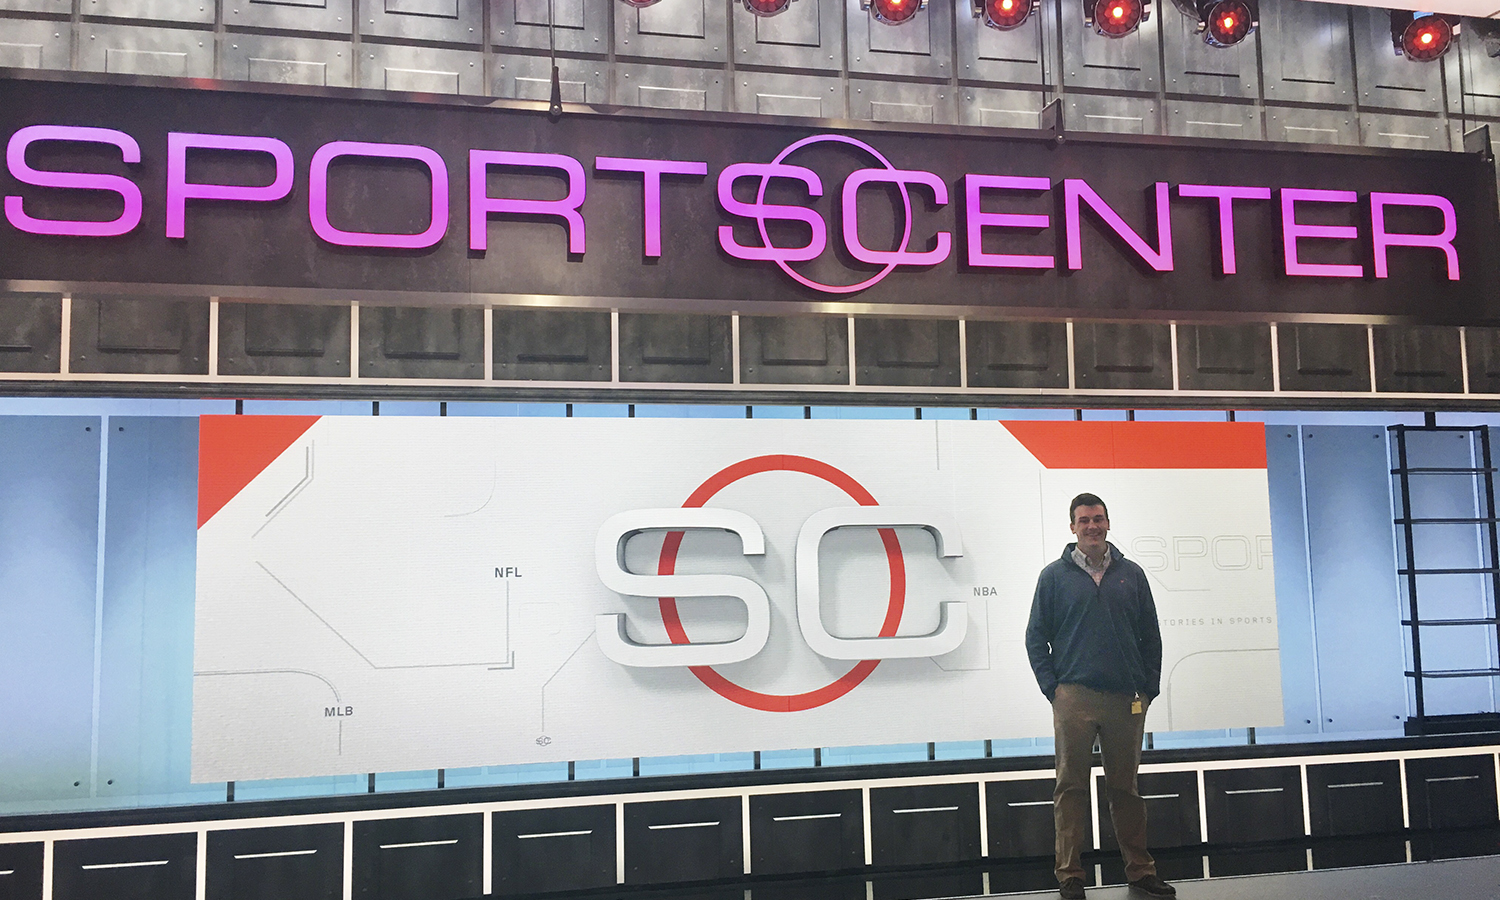 Mac Benson '18 poses in front of Sports Center in New York, N.Y. Benson recently began his career with ESPN as a full time production assistant.